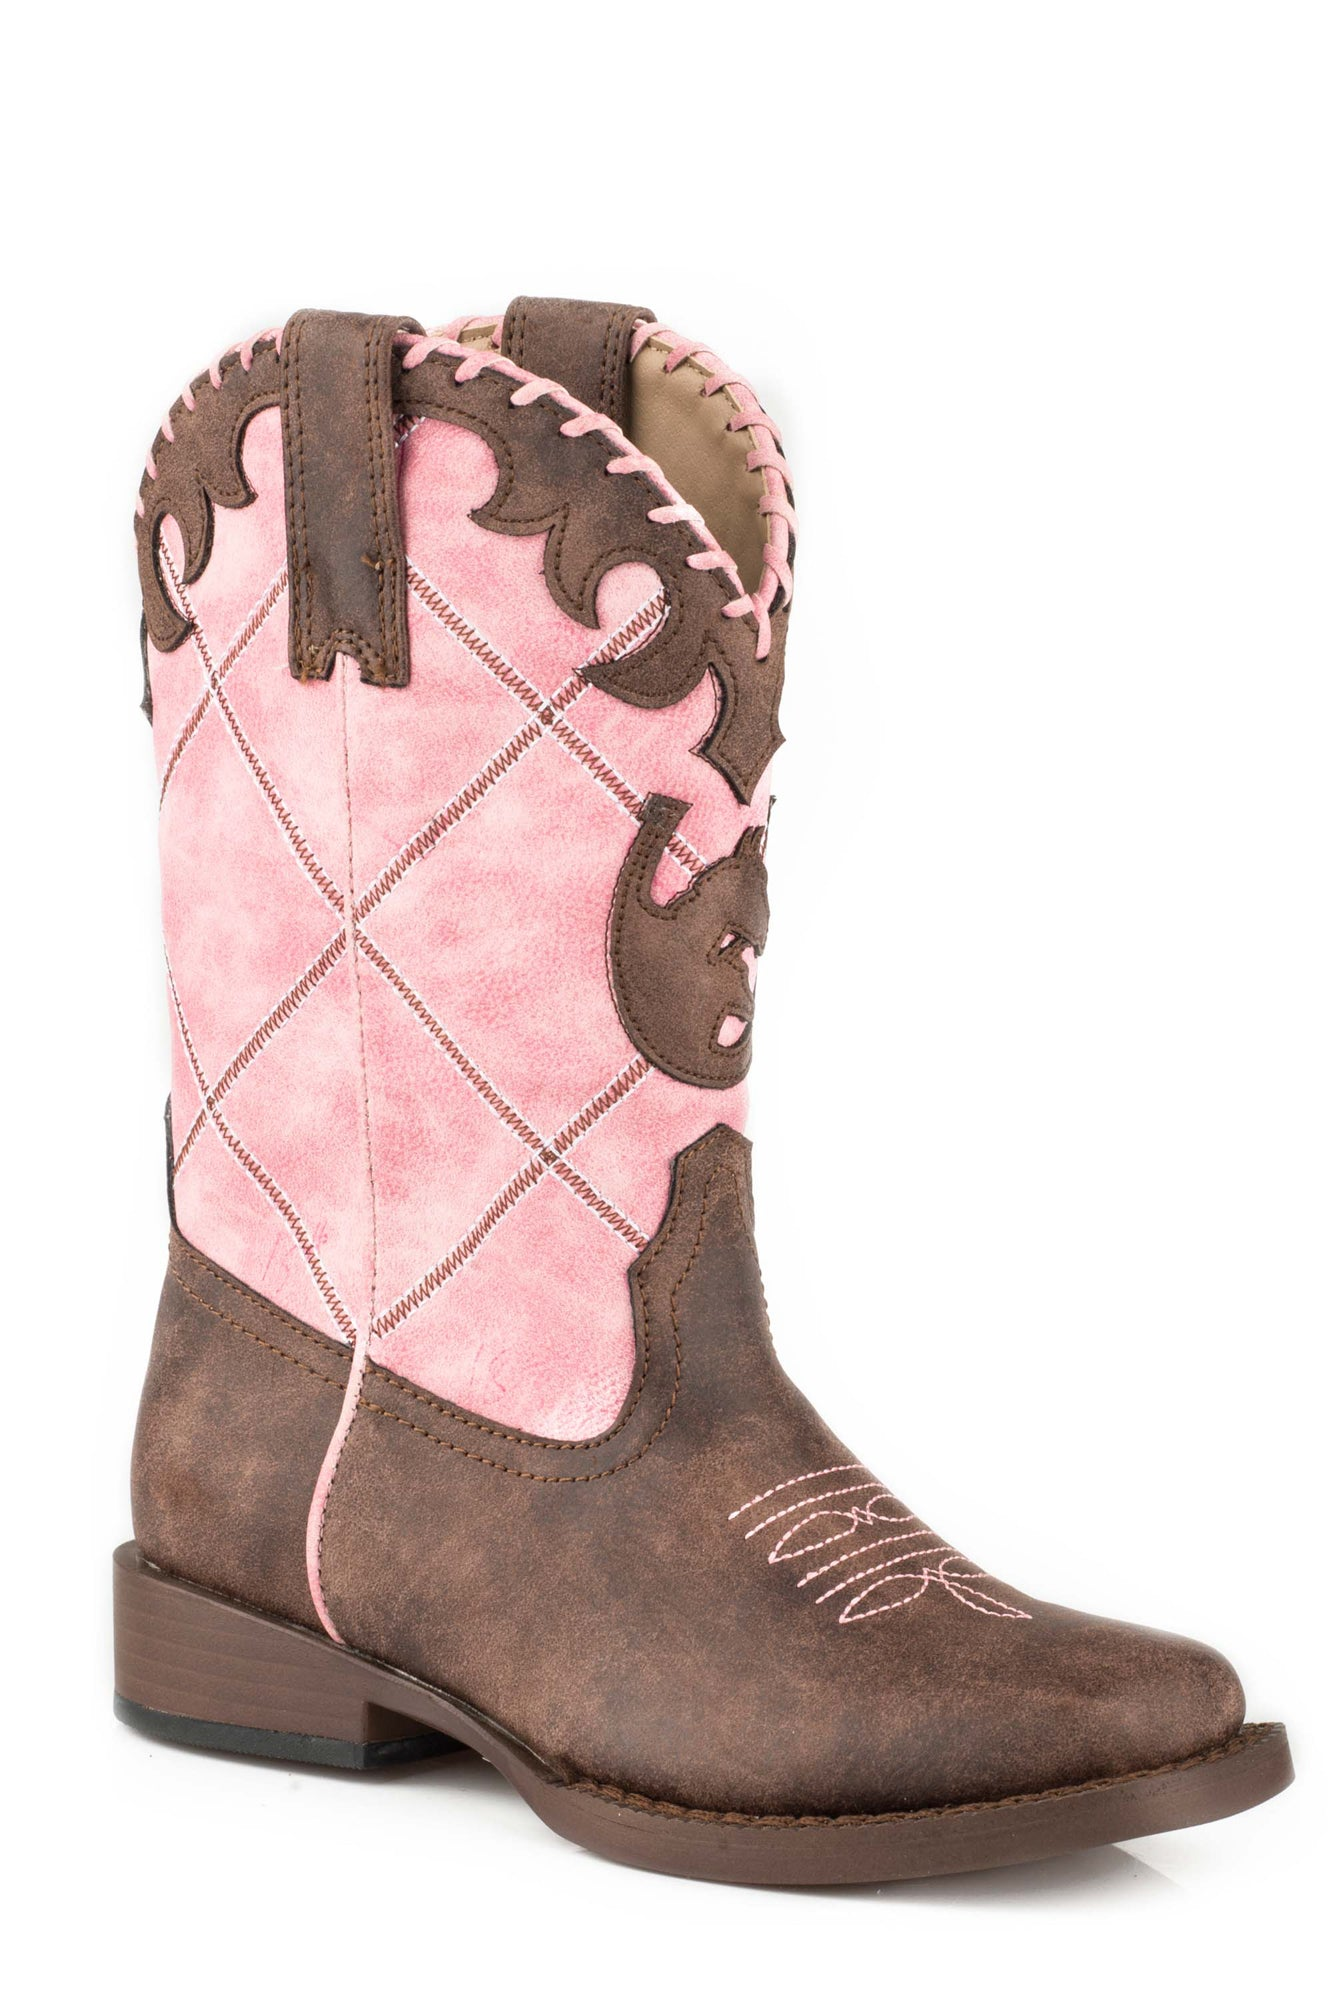 404ef490c54 Roper Diamond Girls Kids Pink/Brown Faux Leather Lacy Cowboy Boots